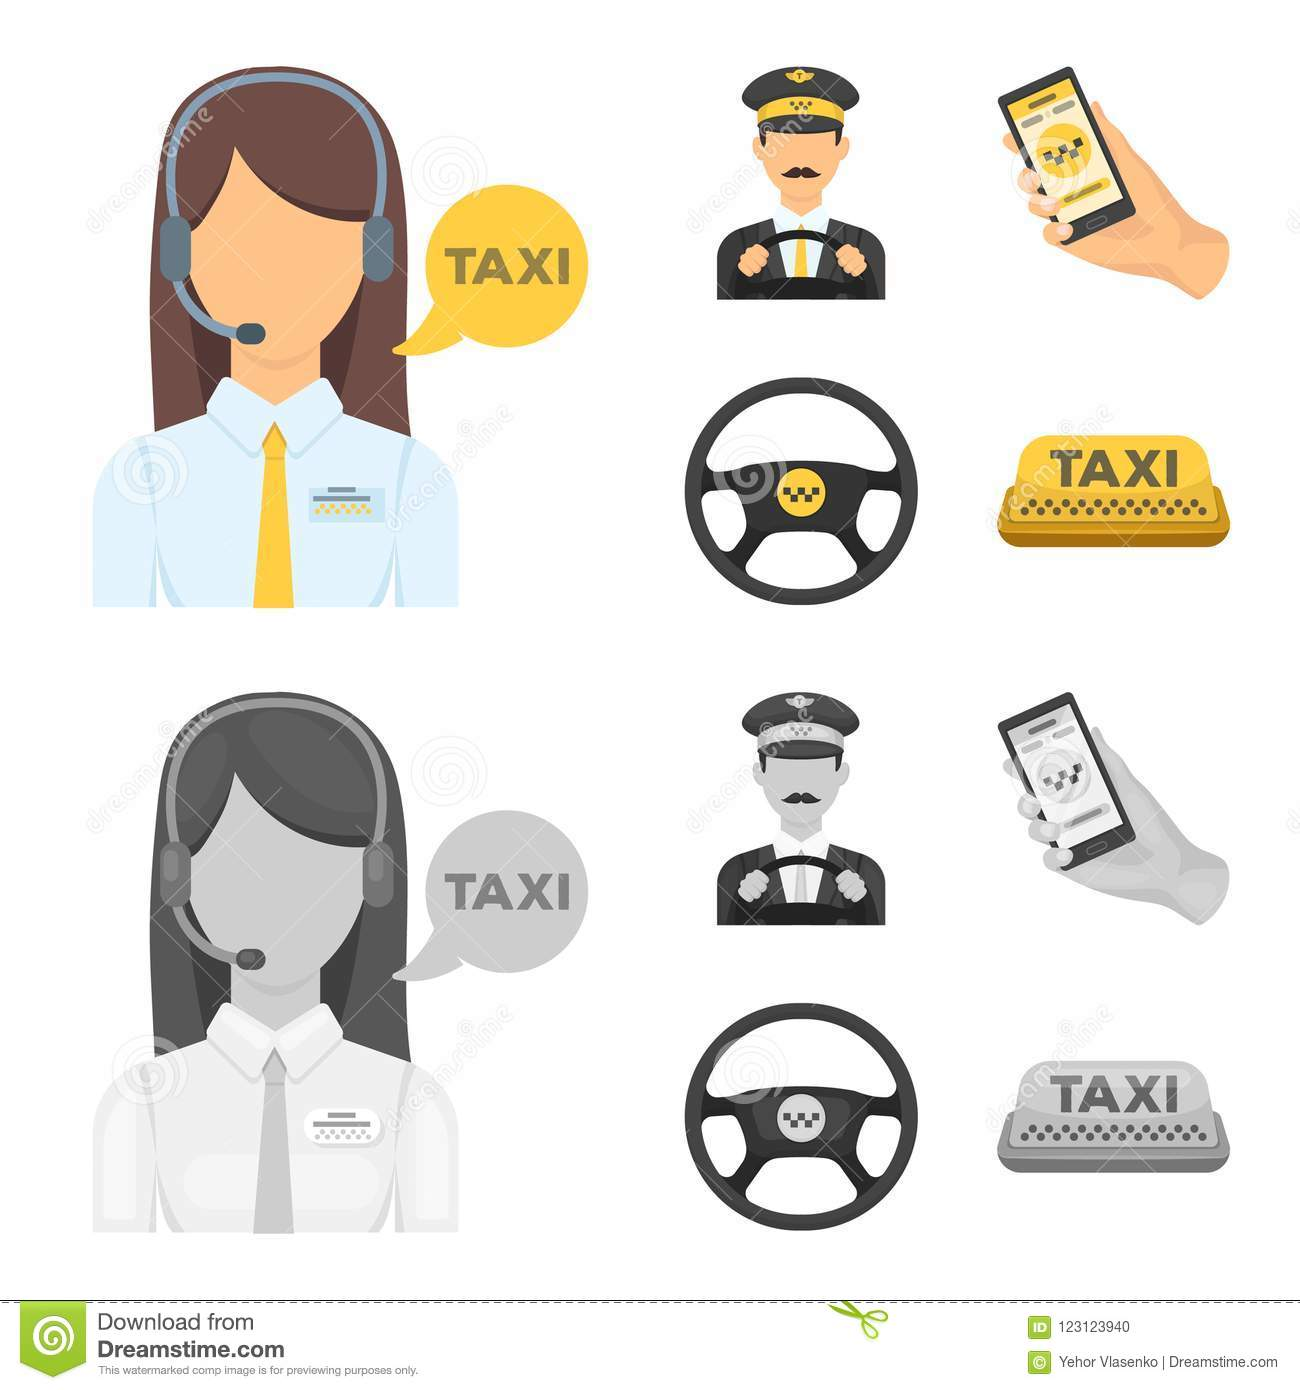 A Taxi Driver With A Microphone, A Taxi Driver At The Wheel, A Cell